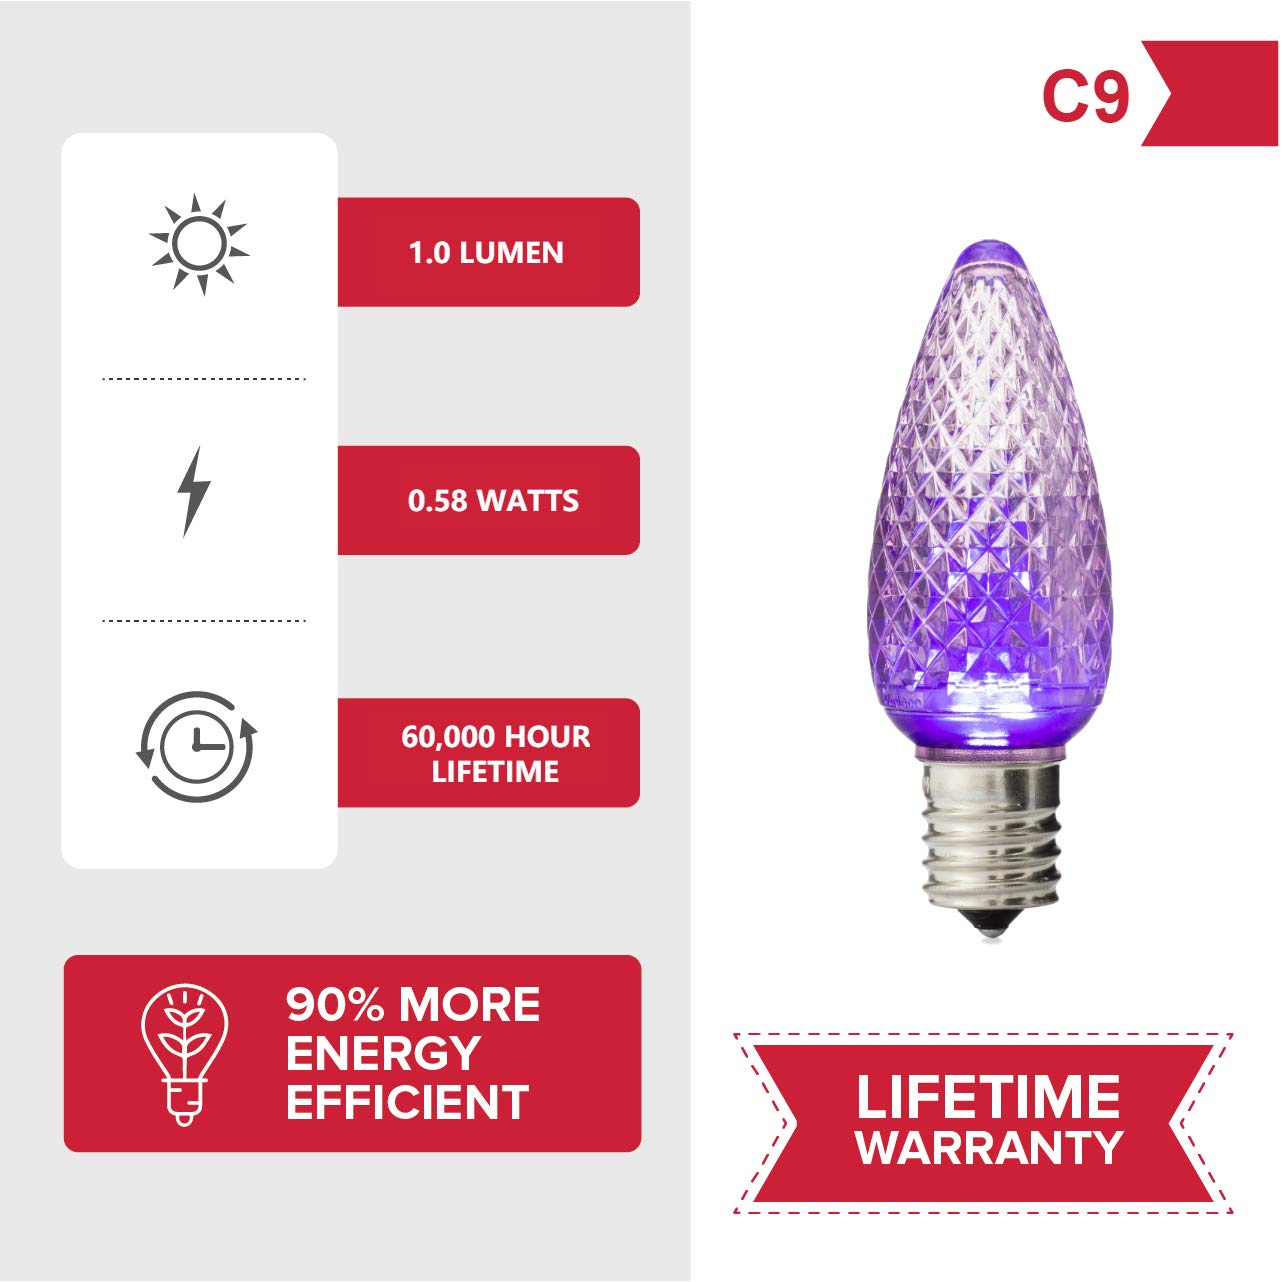 Set of 25 Holiday Lighting Outlet Faceted C9 Christmas Lights Warm Christmas Decor for Indoor /& Outdoor Use Purple LED Light Bulbs Holiday Decoration 3 SMD LEDs in Each Light Bulb